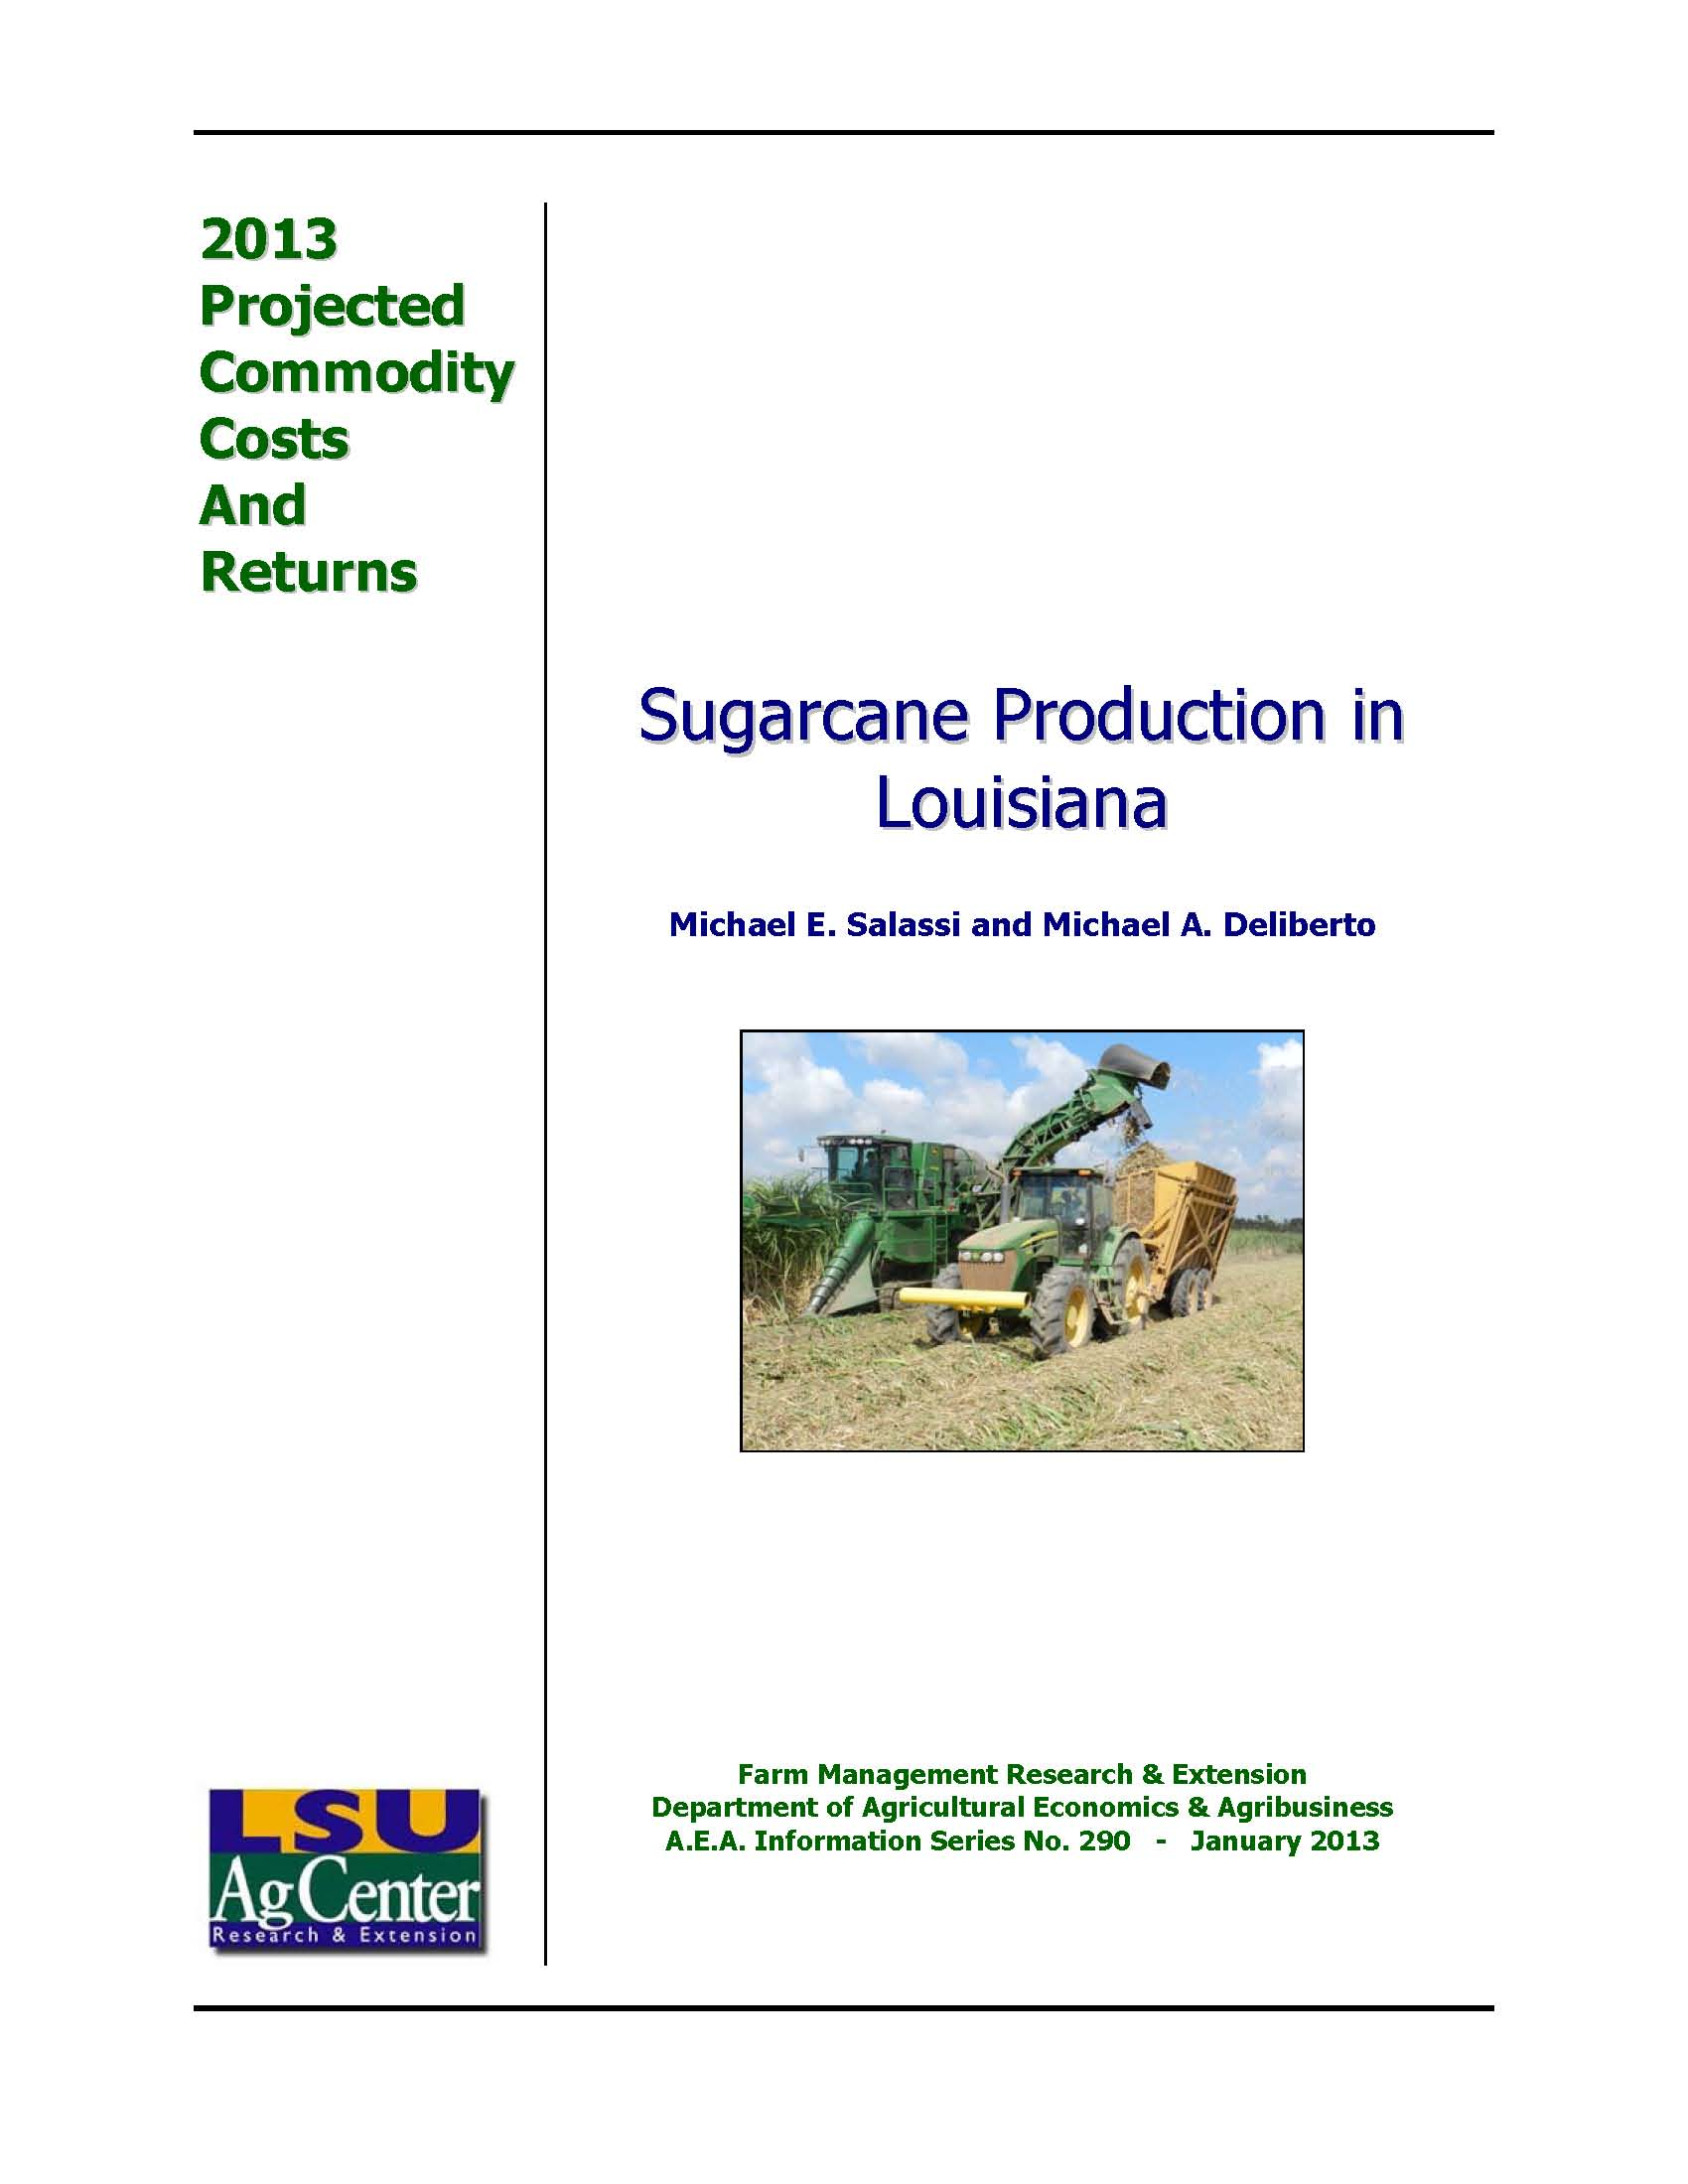 2013 Projected Louisiana Sugarcane Production Costs